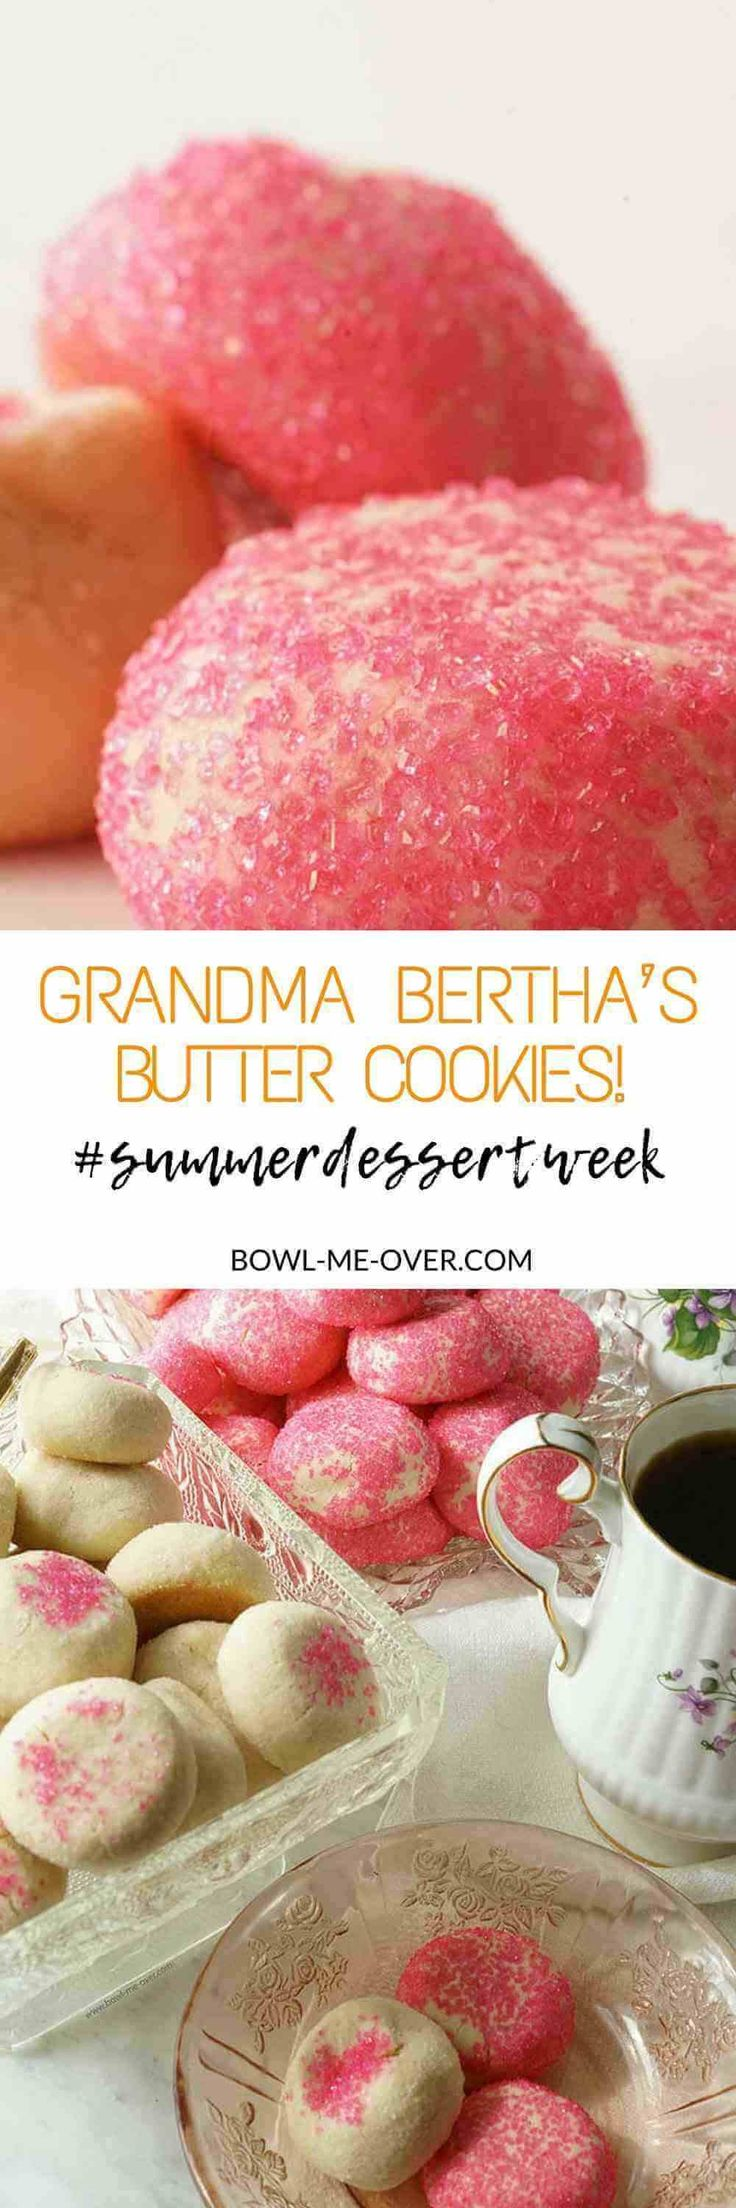 Do you love a sweet treat? Grandma Bertha's Butter Cookies! A family favorite these cookies are a sweet snack for the kids & delicious with coffee or tea! #ad #SummerDessertWeek